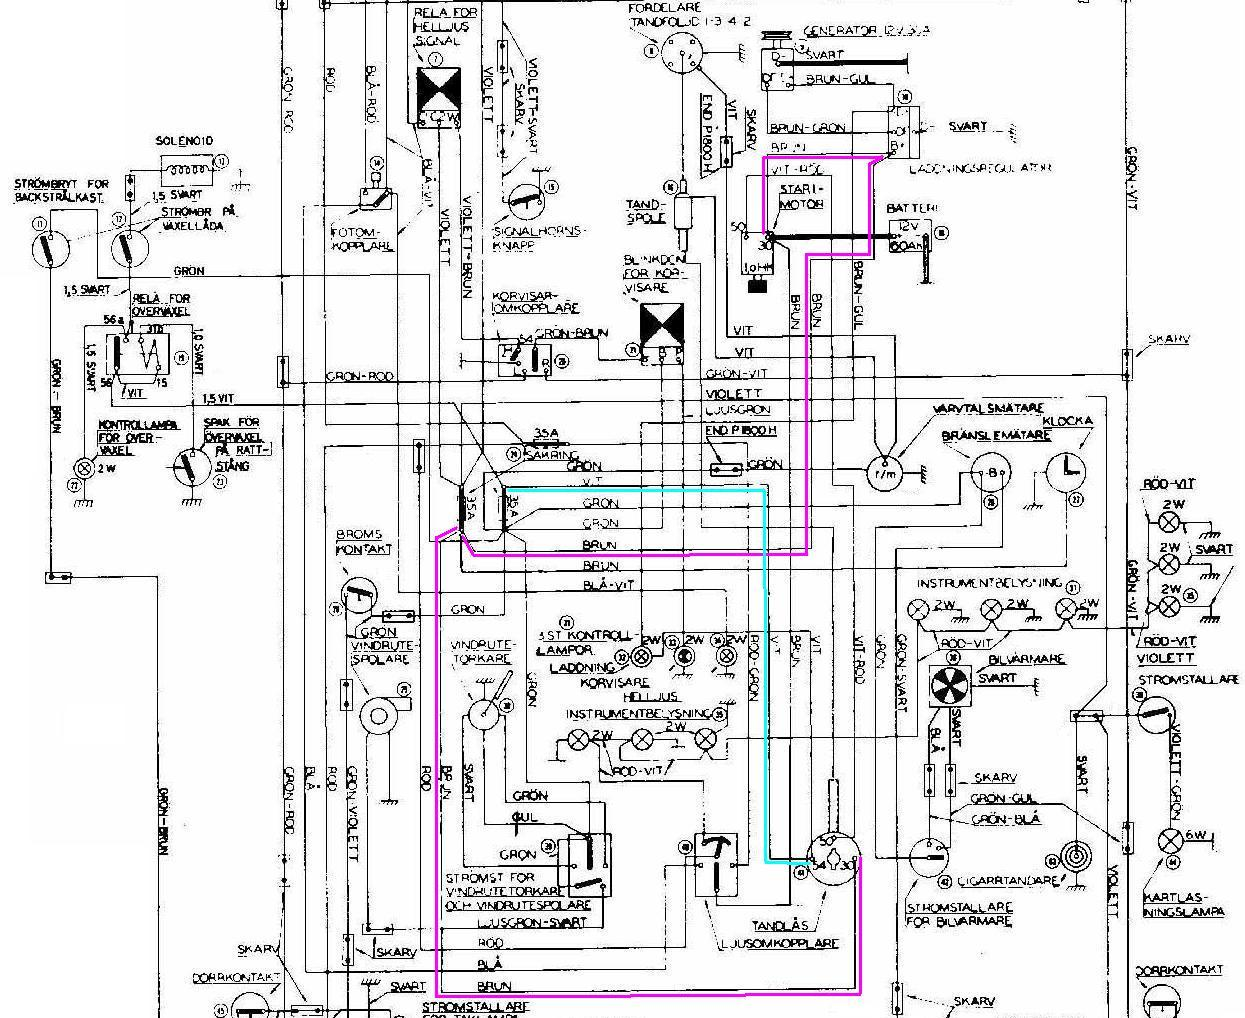 daisy chain wiring diagram ez go 36 volt battery connection diagrams free engine image